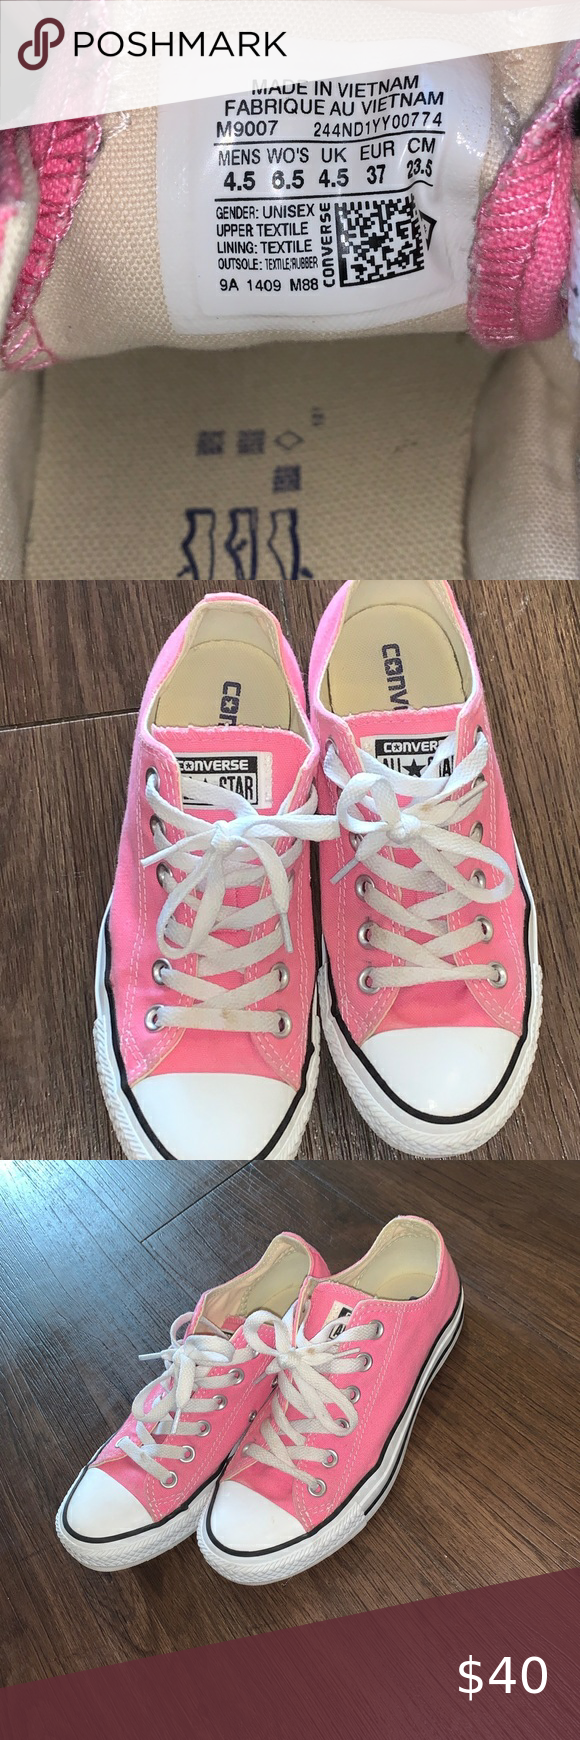 Hot Pink Converse in 2020 | Pink